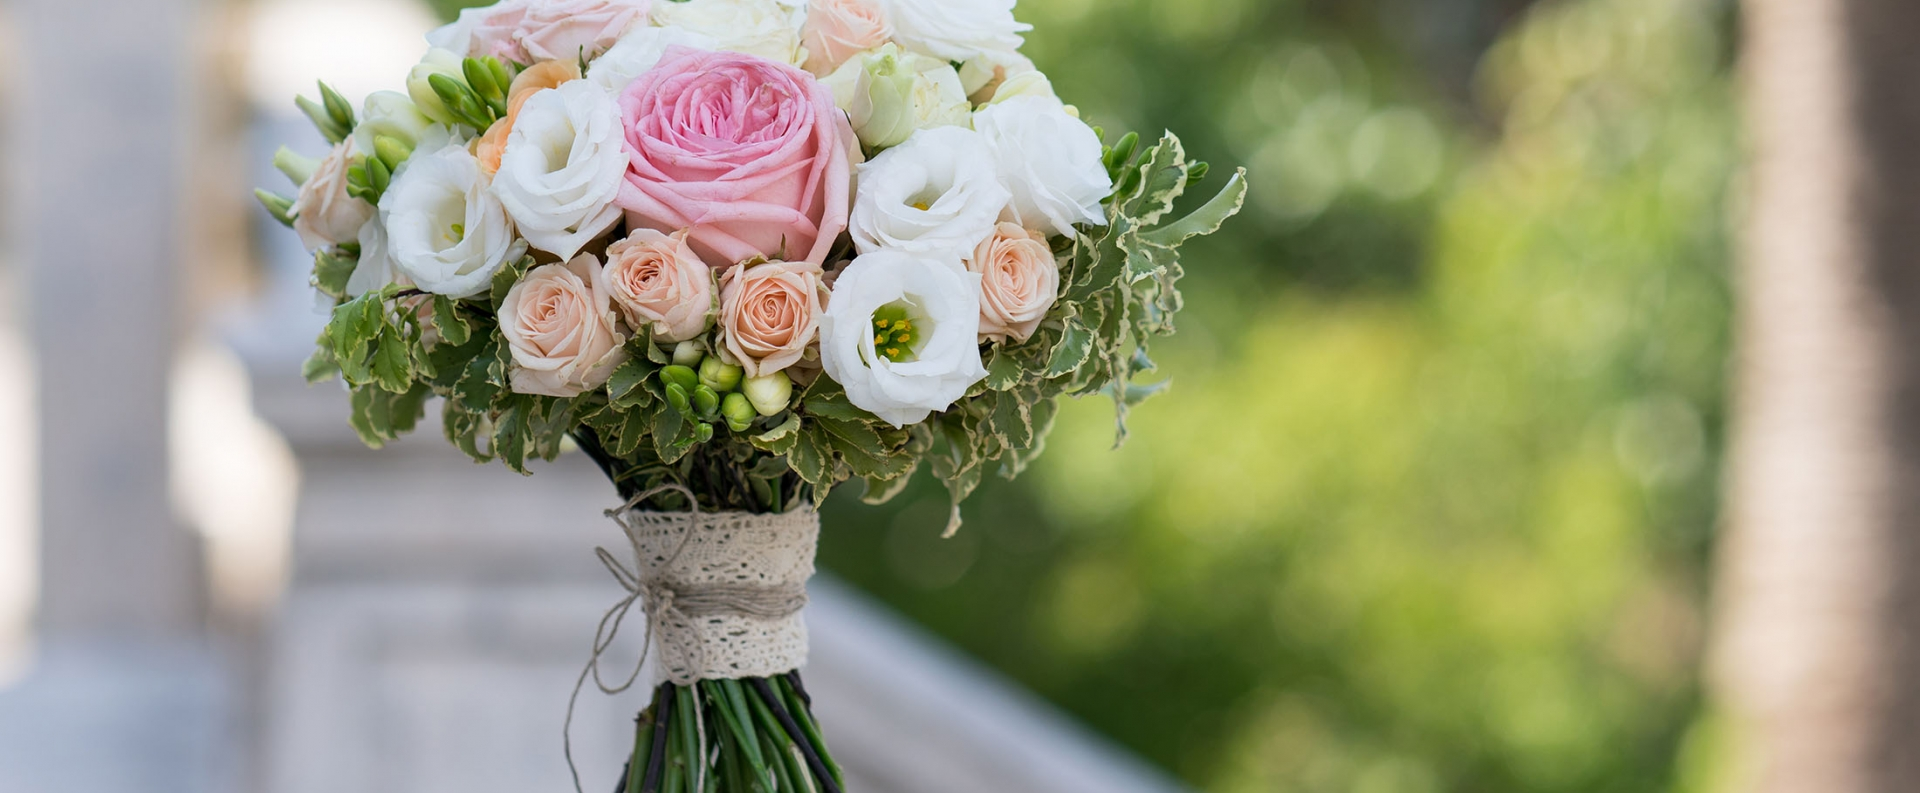 a bridal bouquet of roses, freesia, eustoma standing on a stone background